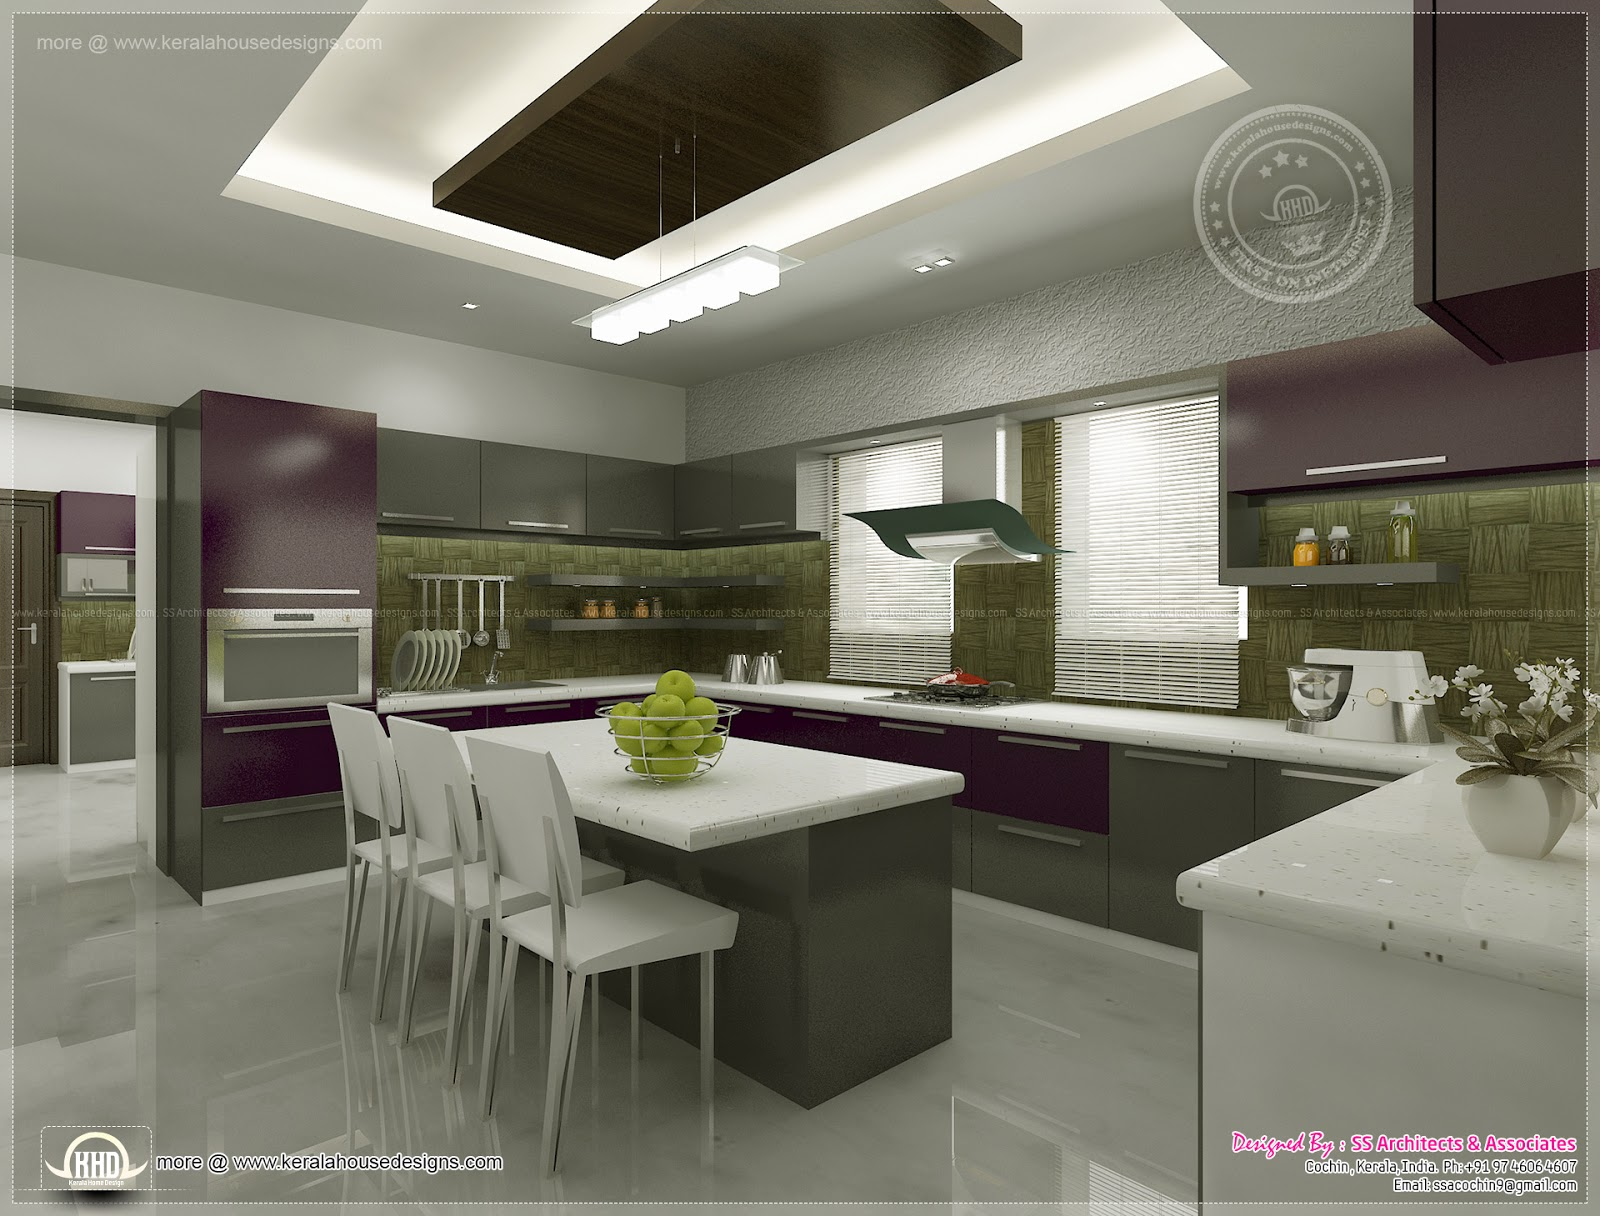 Kitchen interior views by ss architects cochin kerala home design and floor plans - Kitchen interior designing ...